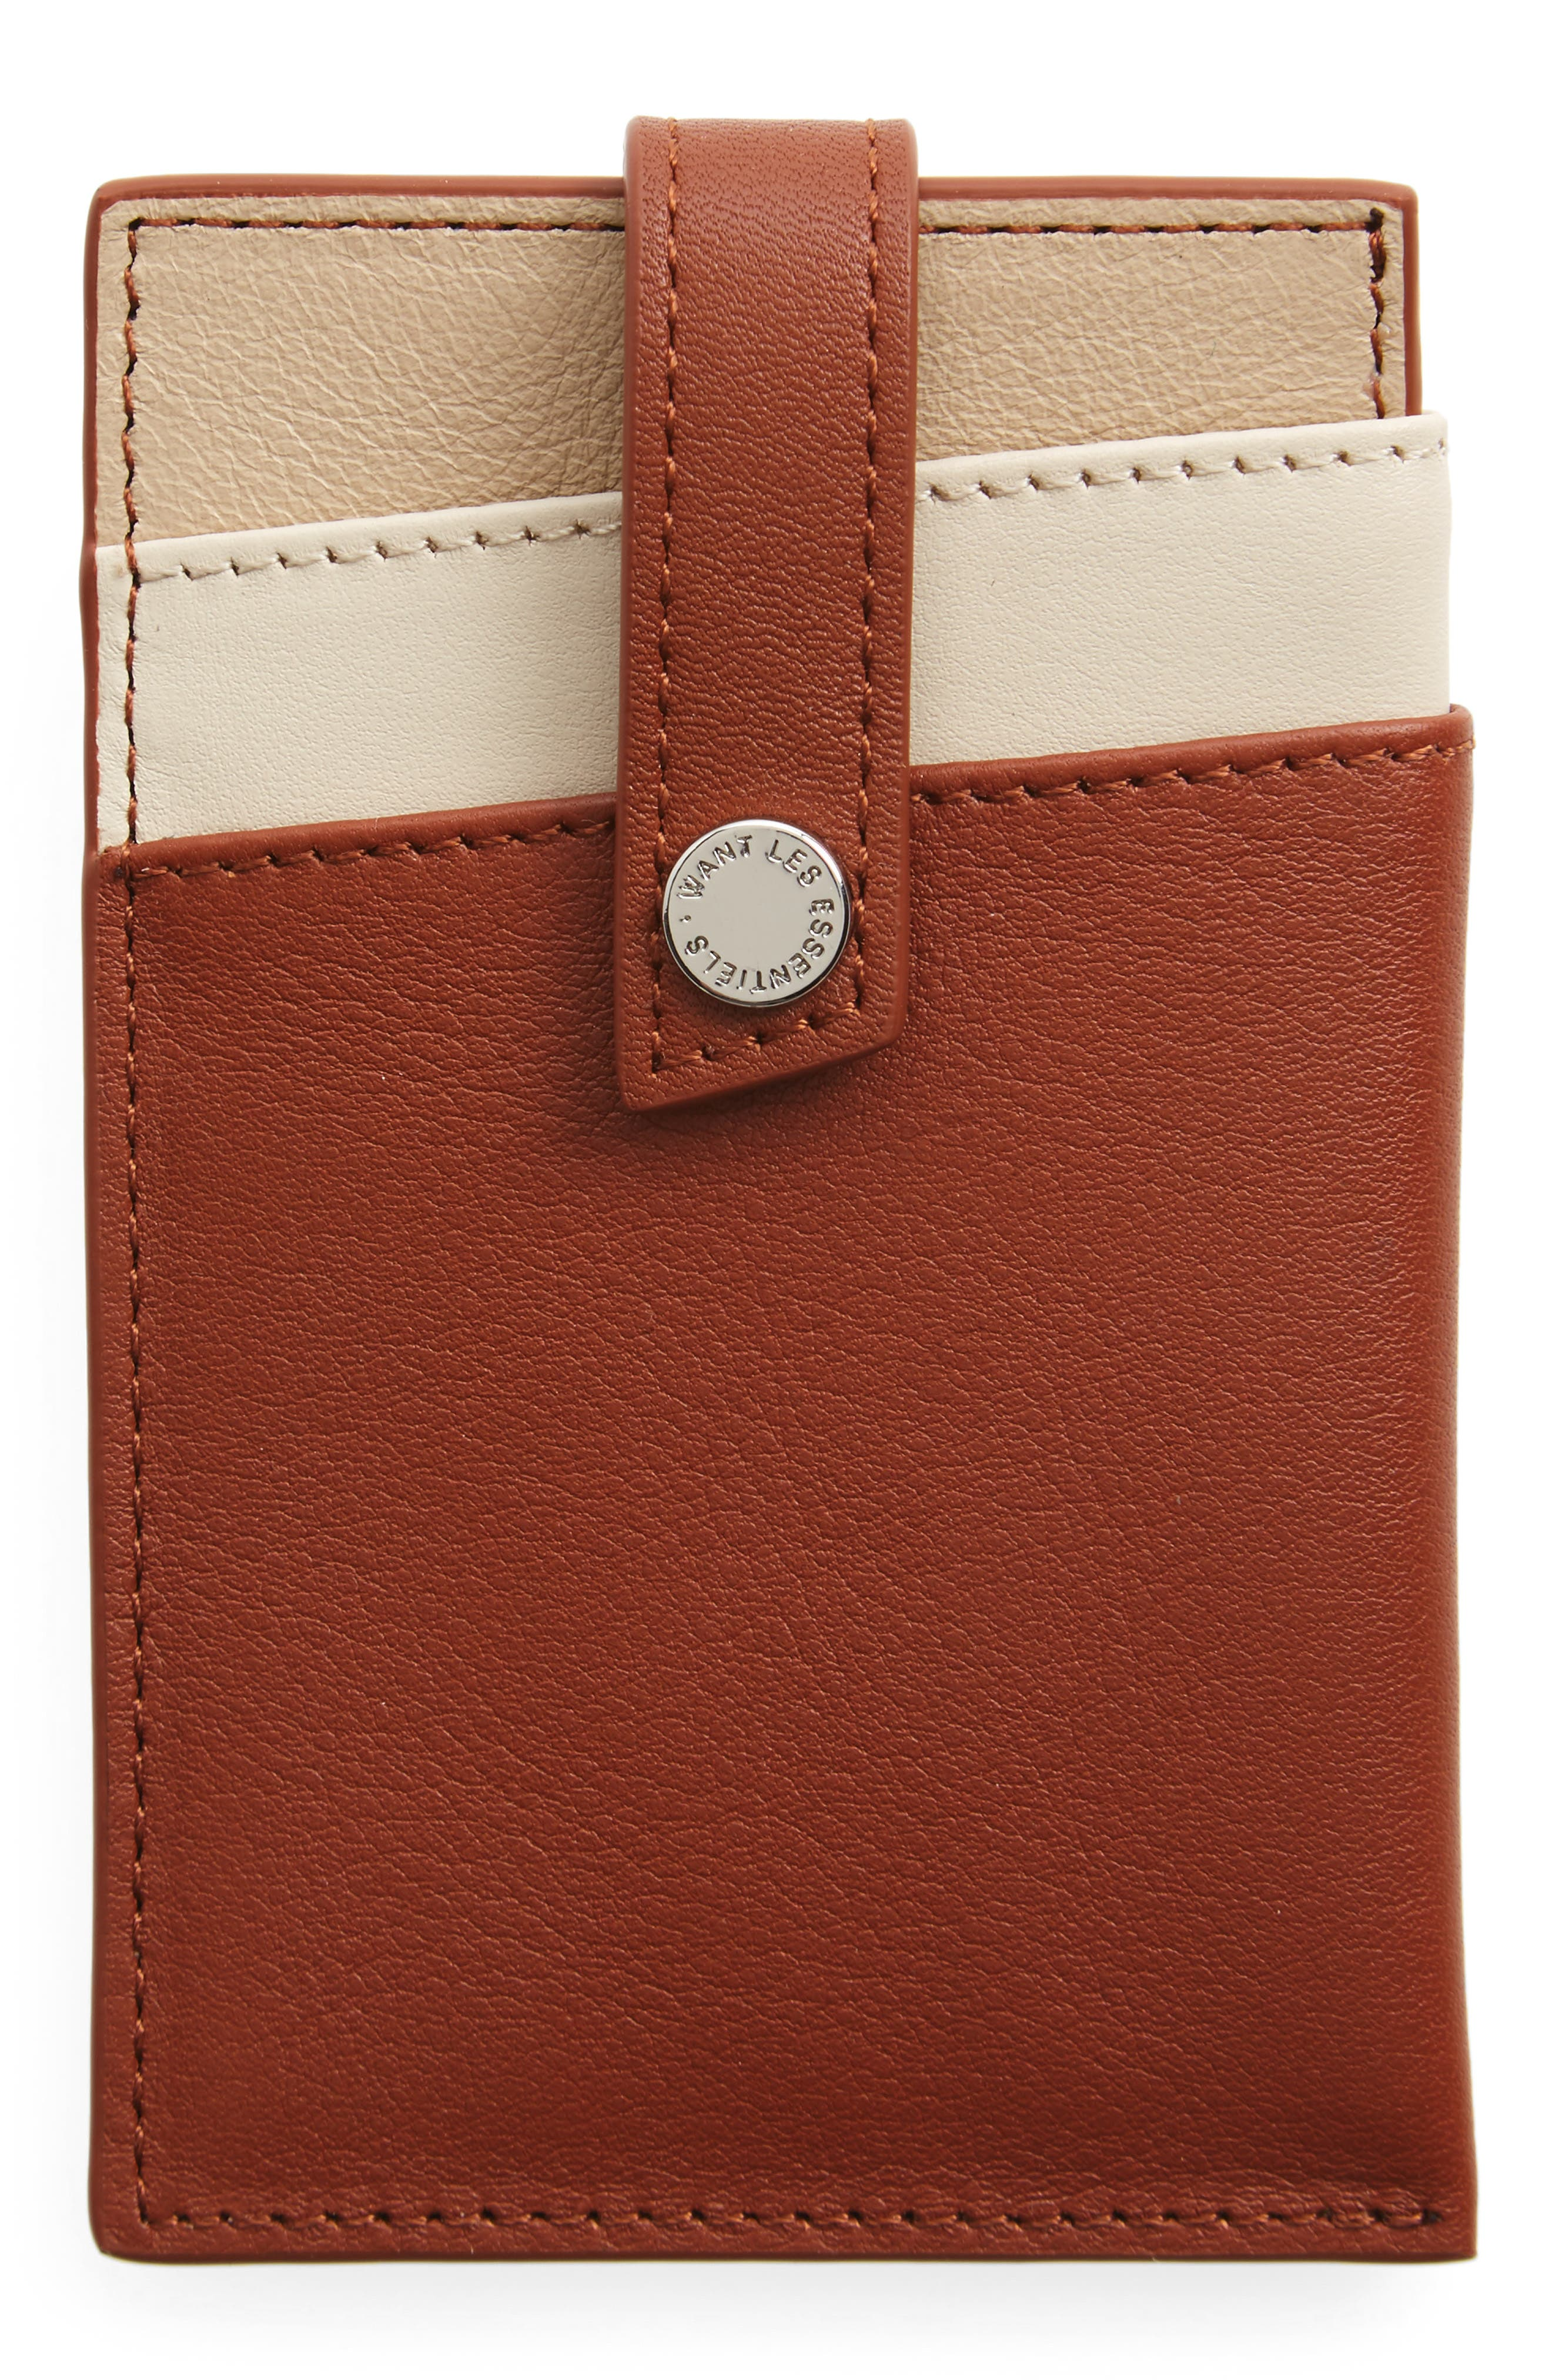 Alternate Image 2  - WANT LES ESSENTIELS 'Kennedy' Leather Money Clip Card Case